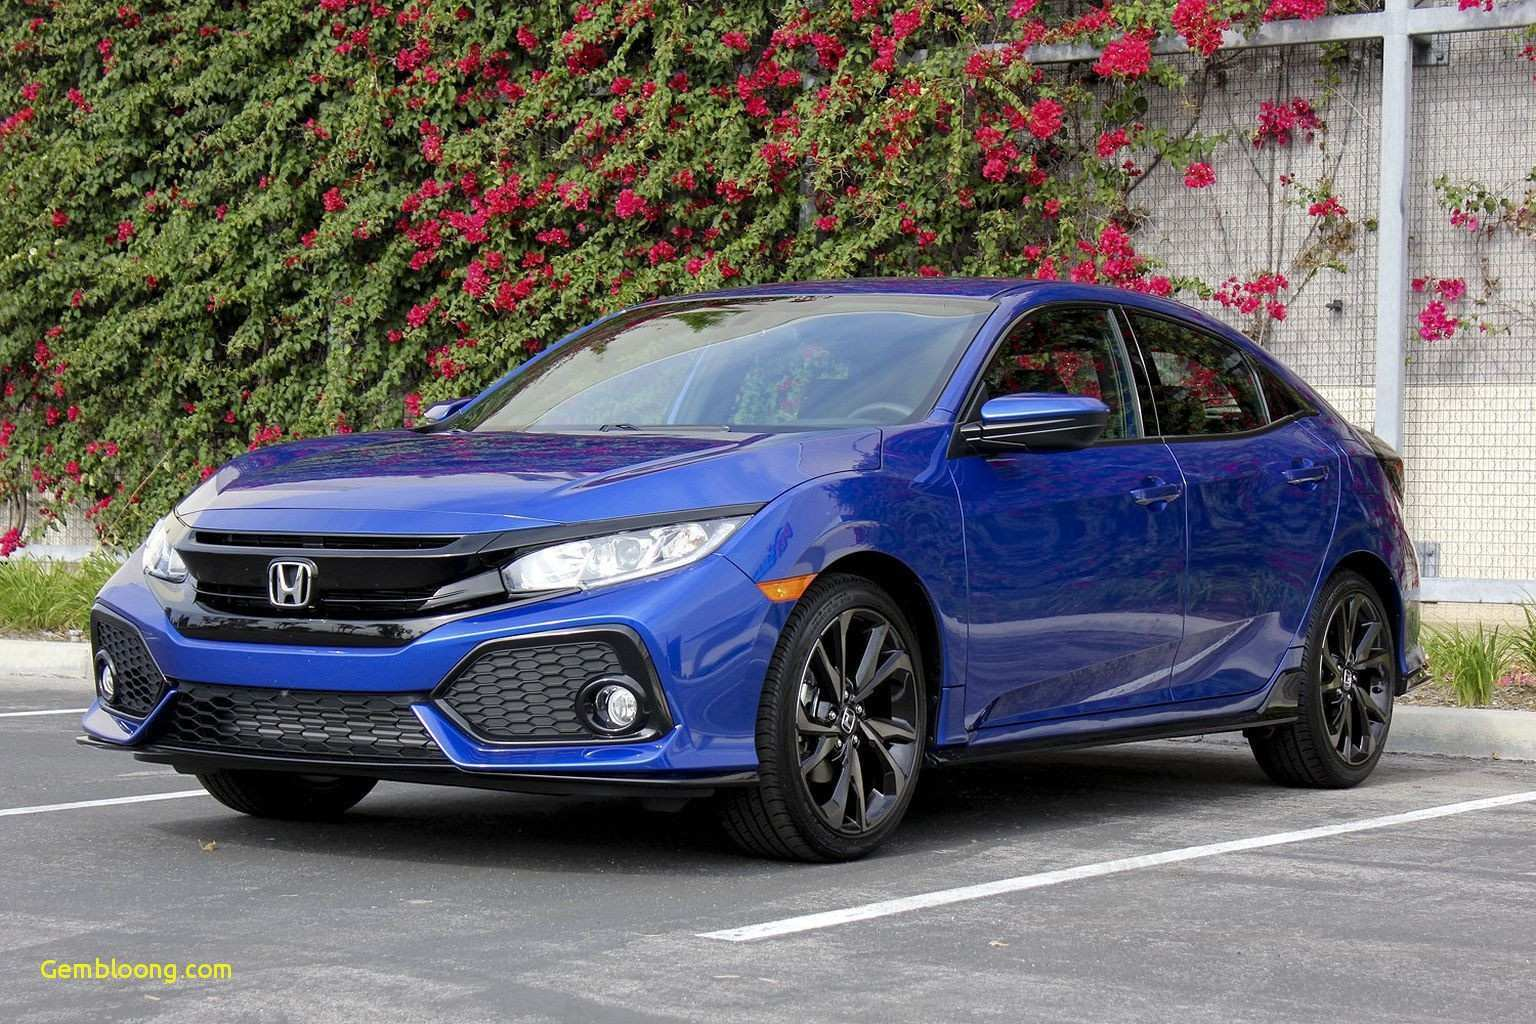 51 The Best 2020 Honda Civic Si Type R Photos